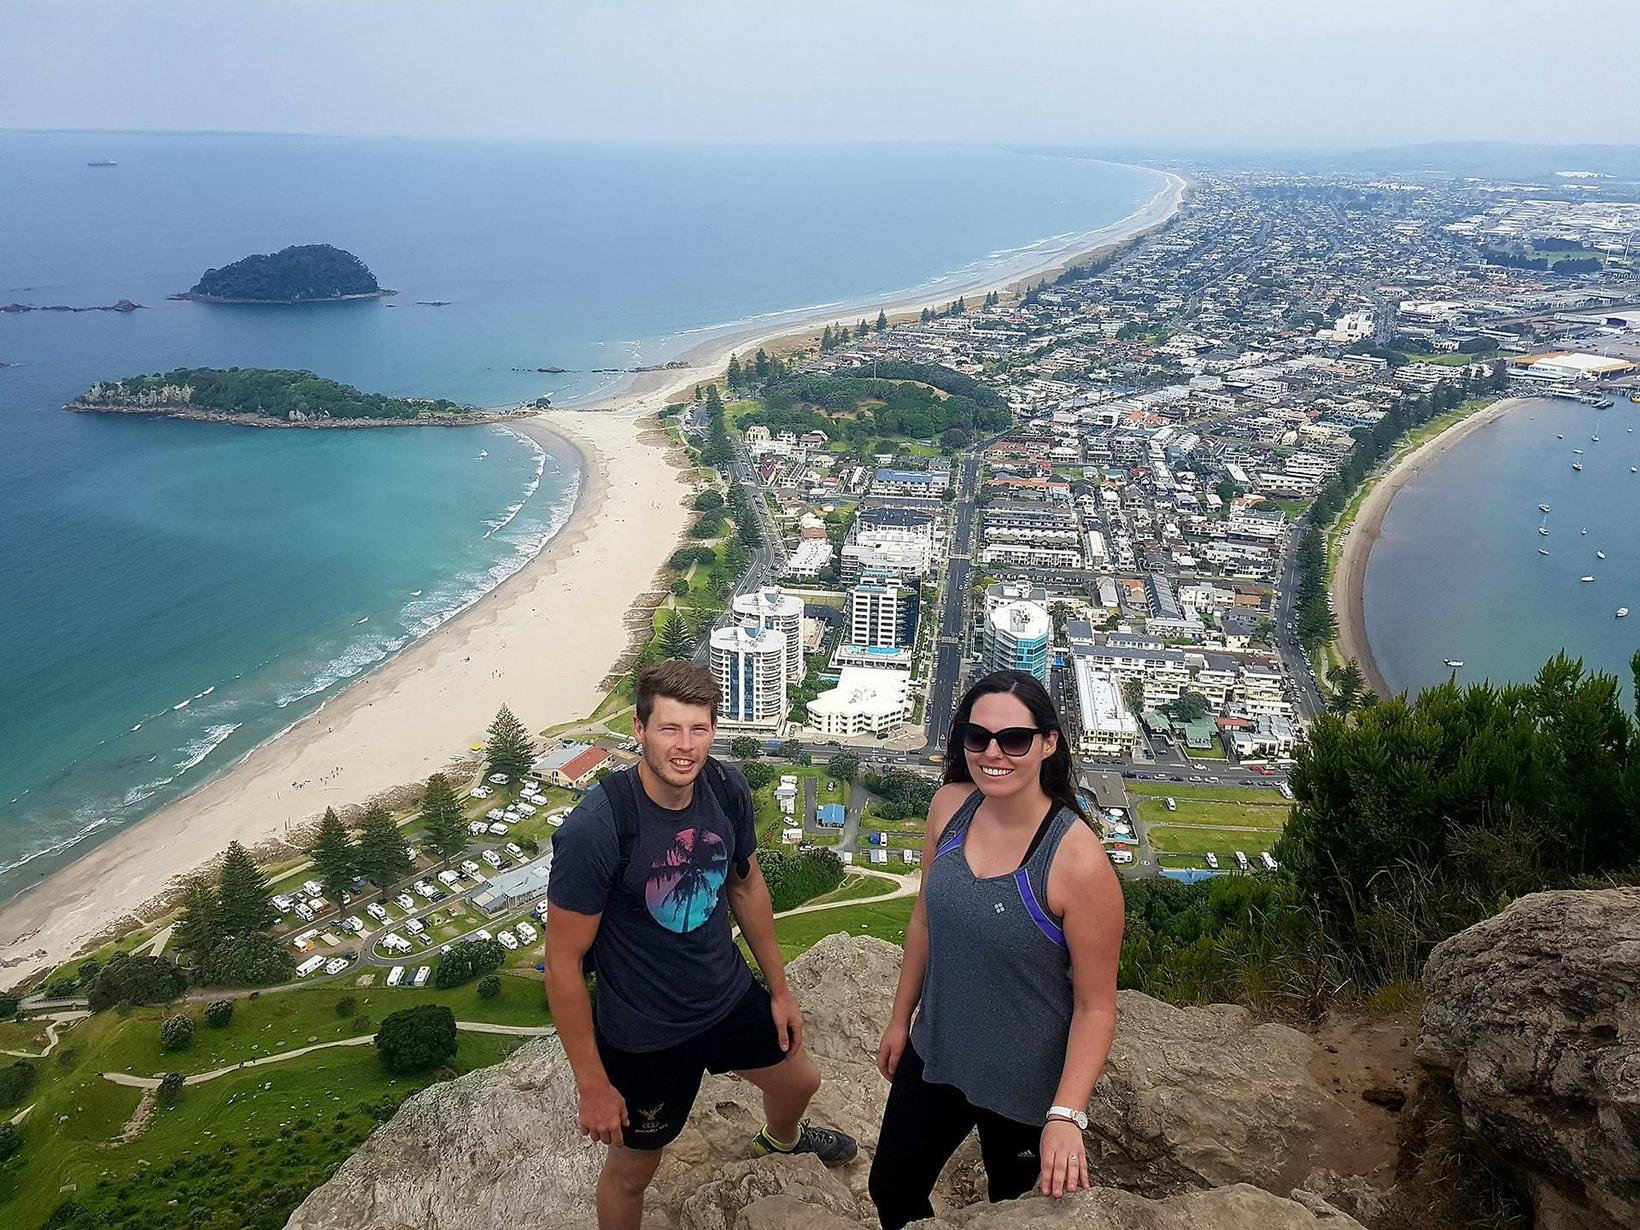 Natalie & Niall from Auckland, New Zealand